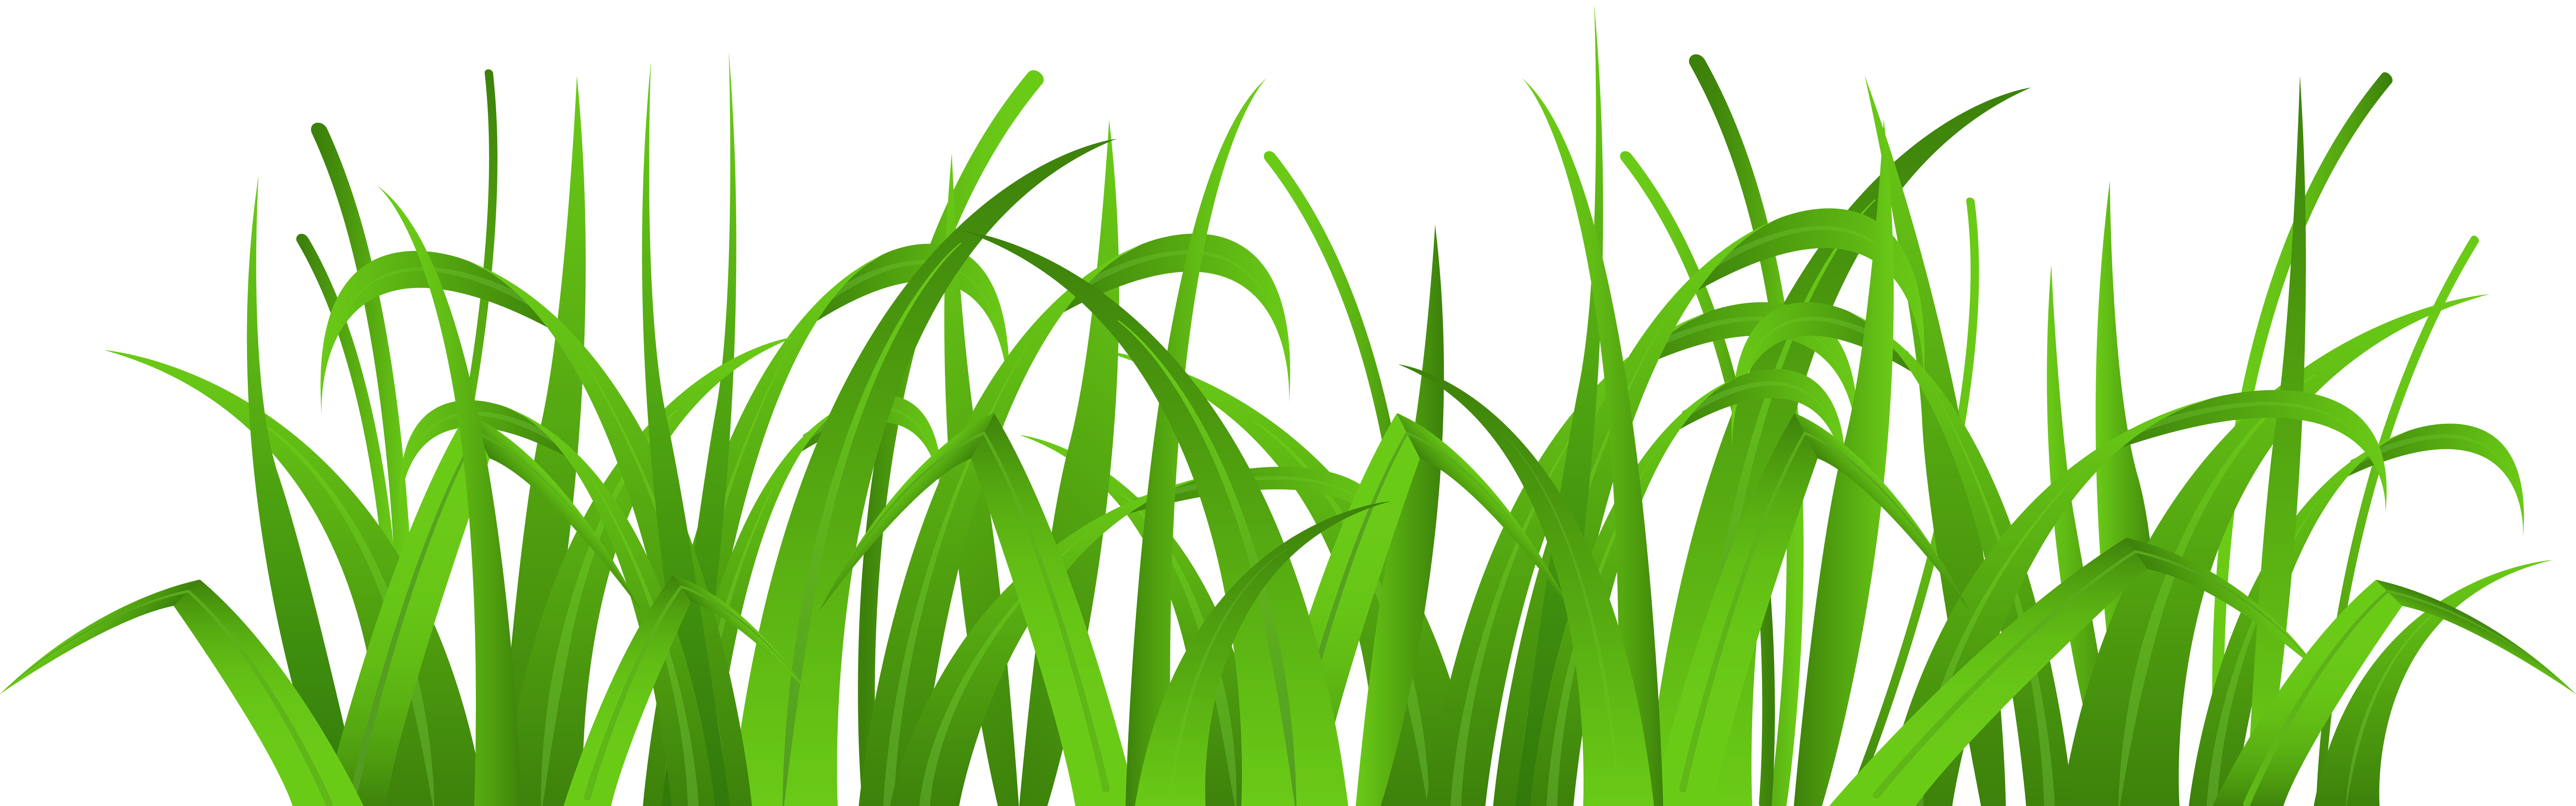 Grass clipart #9, Download drawings